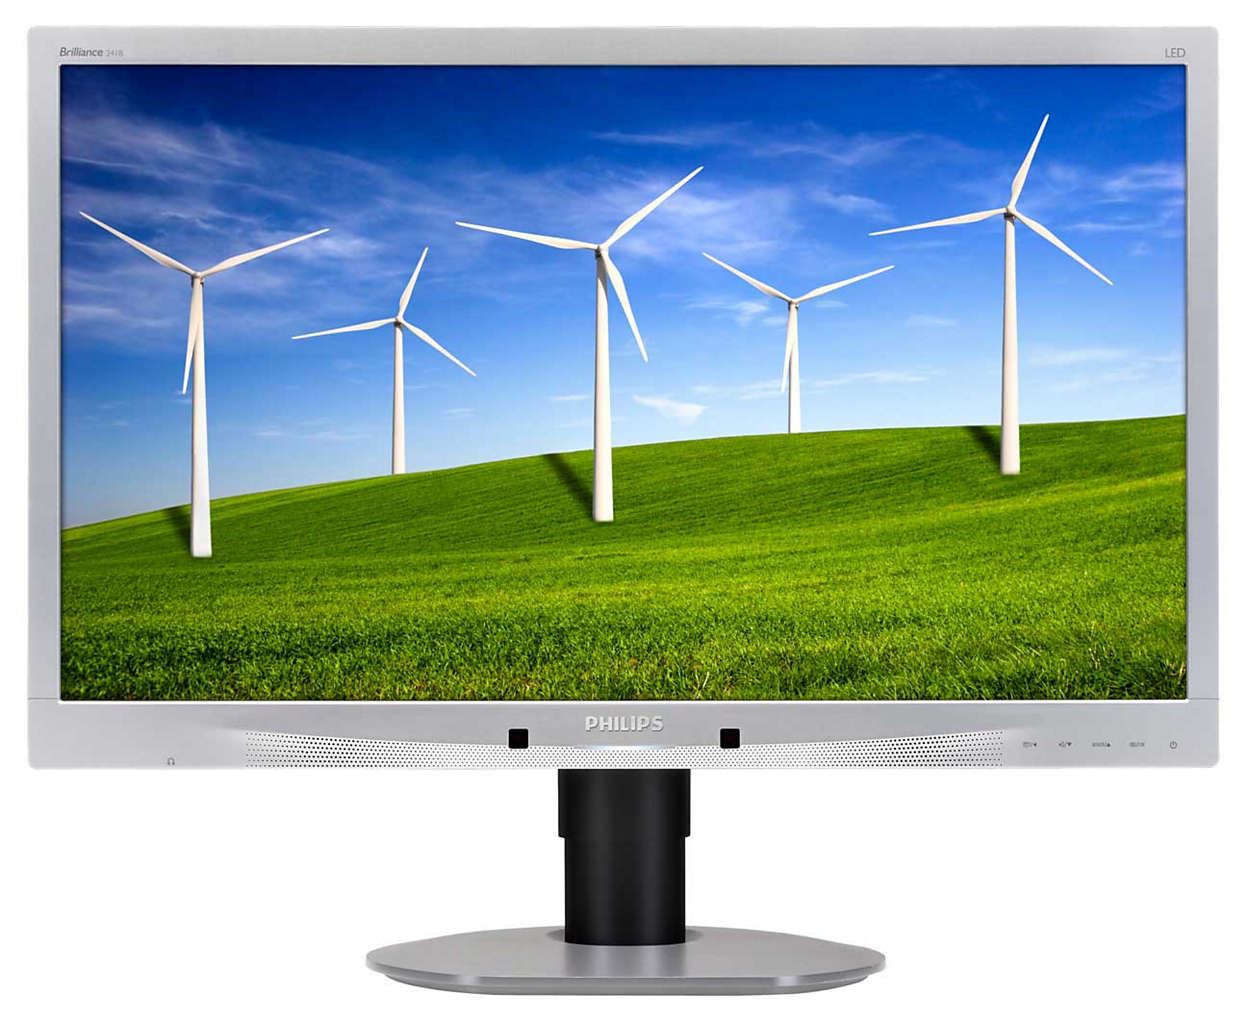 lcd monitor mit led hintergrundbeleuchtung 241b4lpycs 00 philips. Black Bedroom Furniture Sets. Home Design Ideas